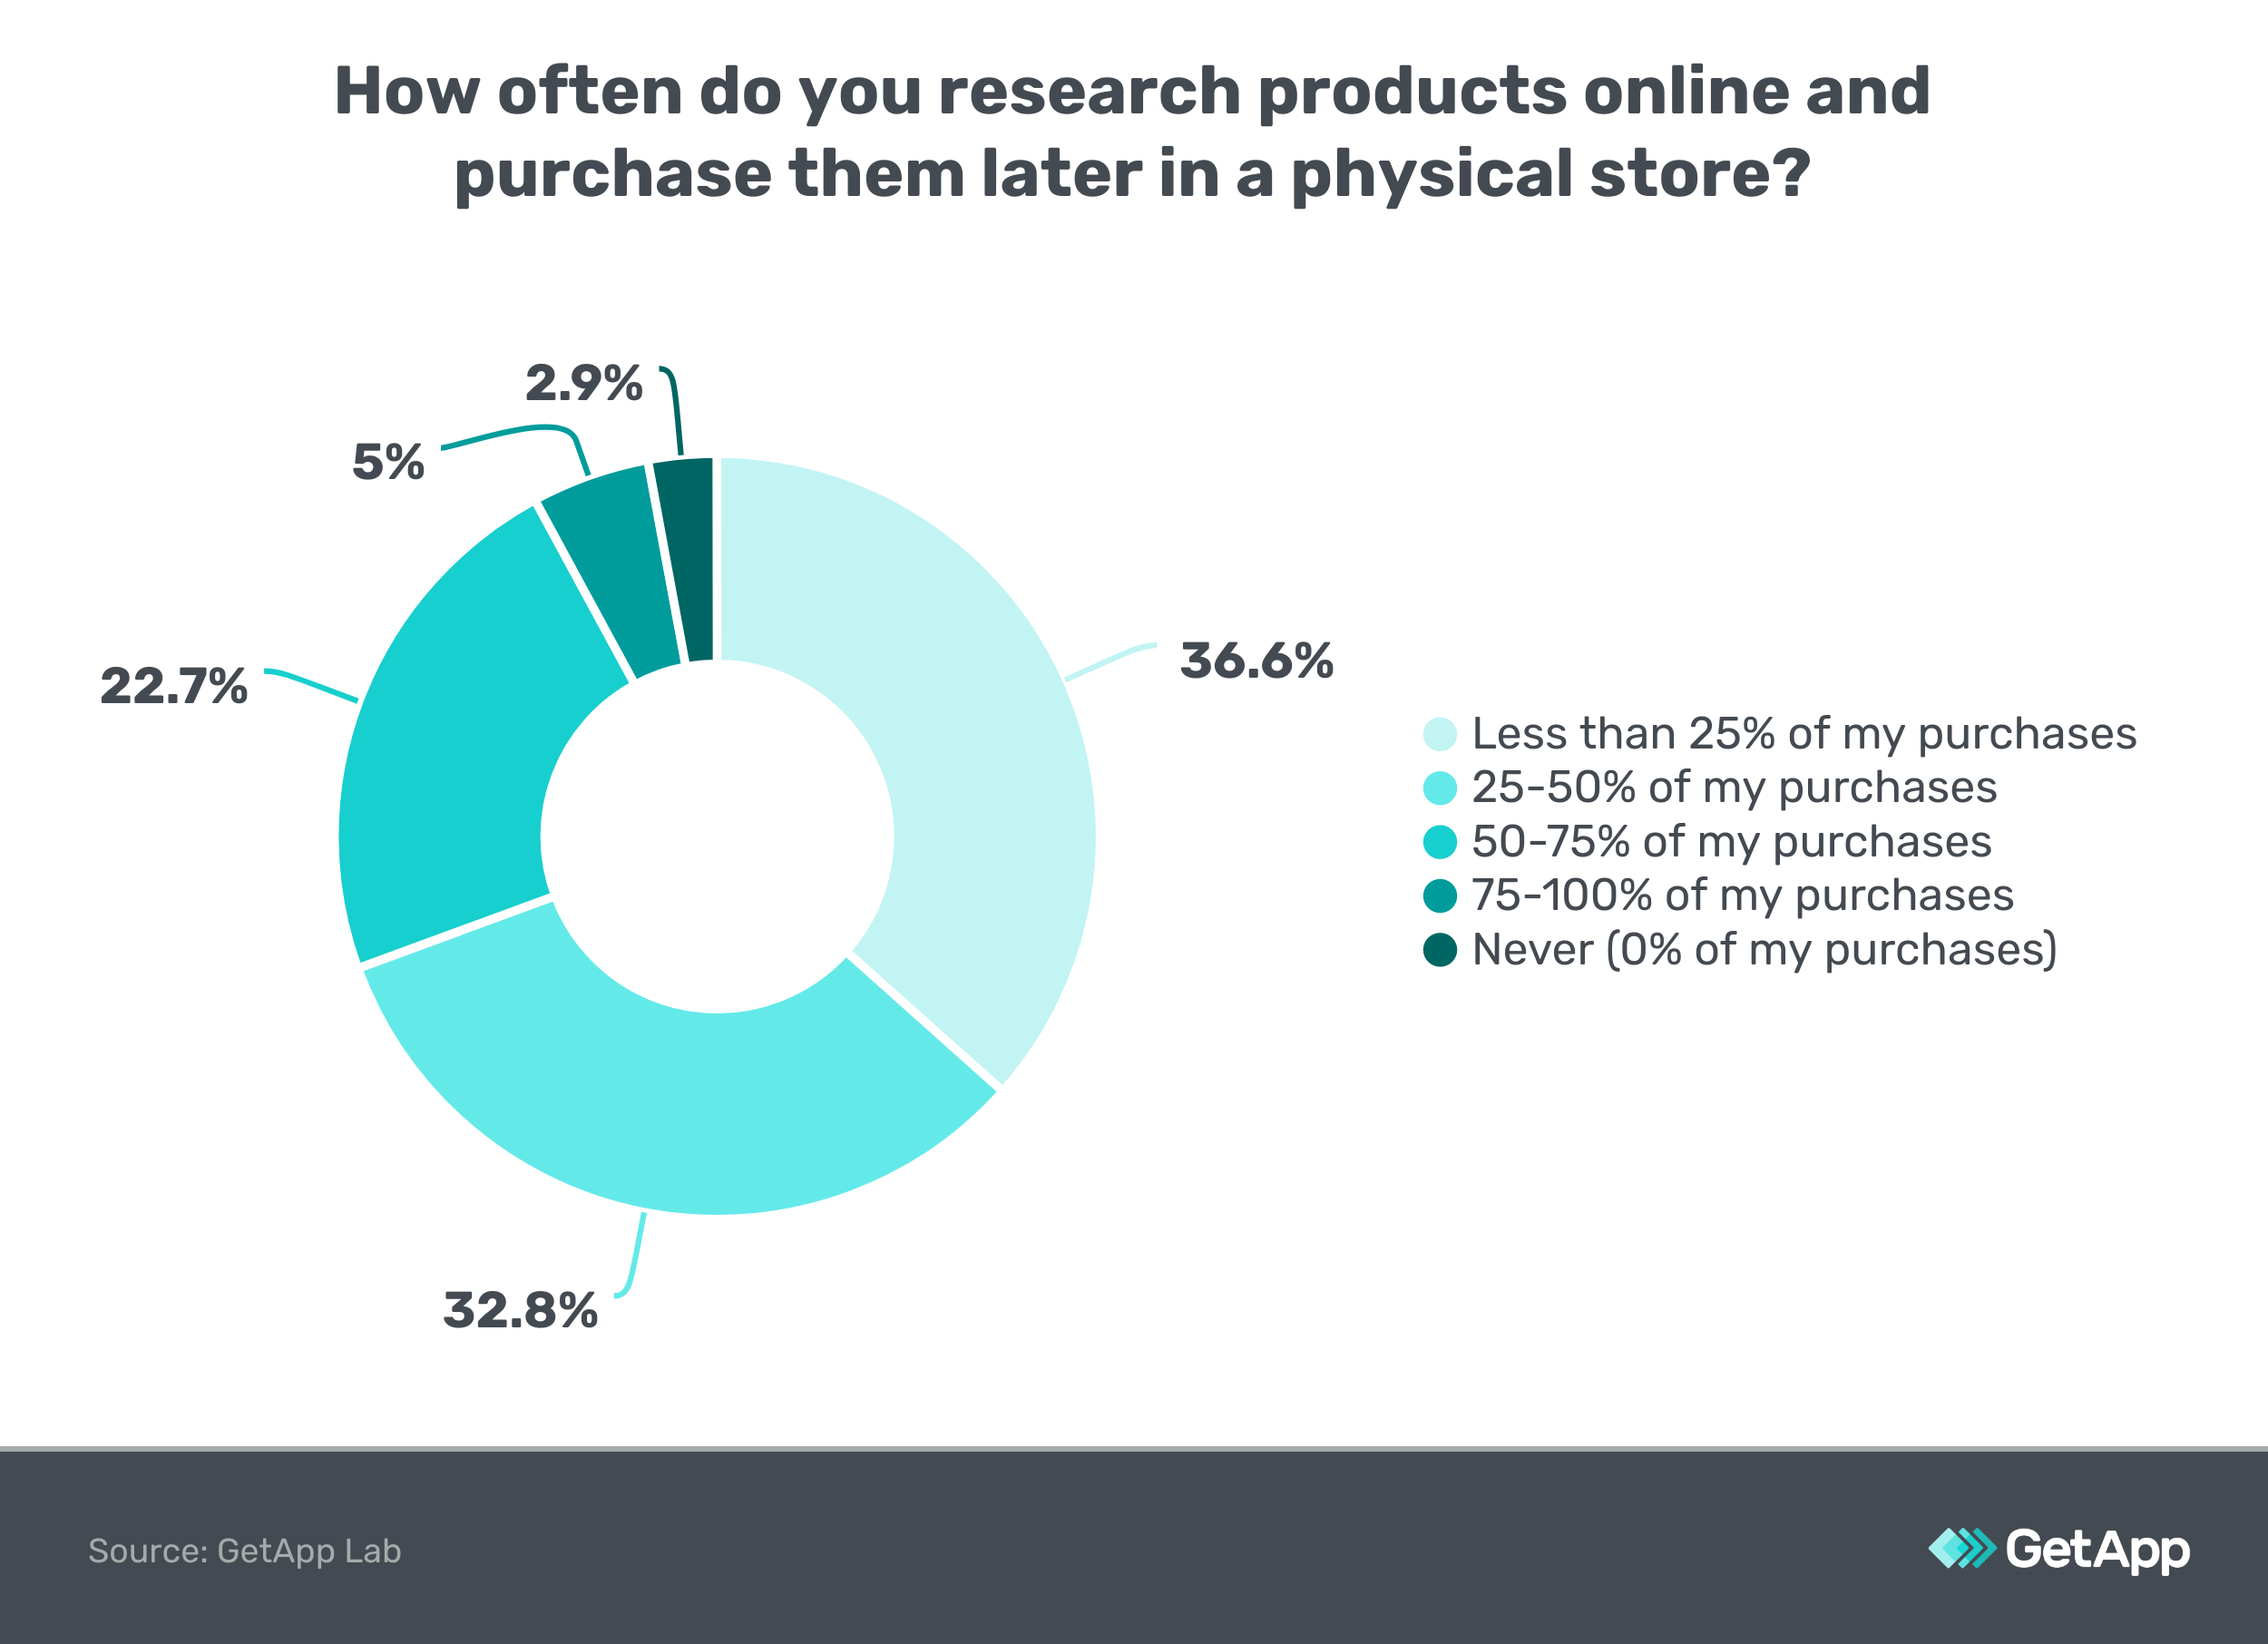 How often do you research products online and purchase later in a store?